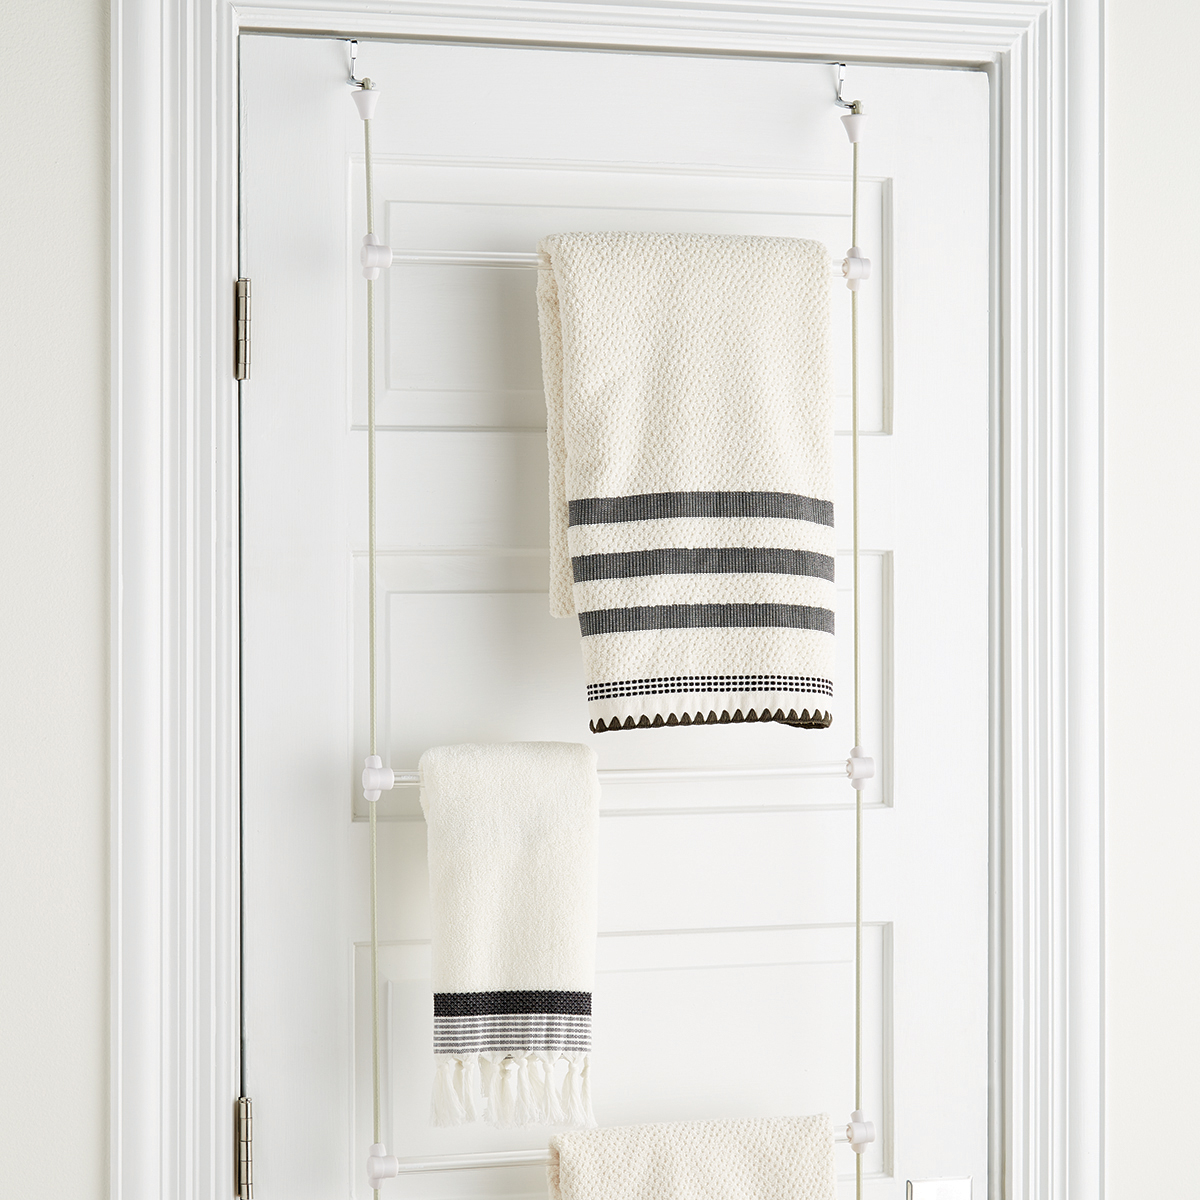 Lovely Towel Hanger Part - 7: Overdoor Towel Rack